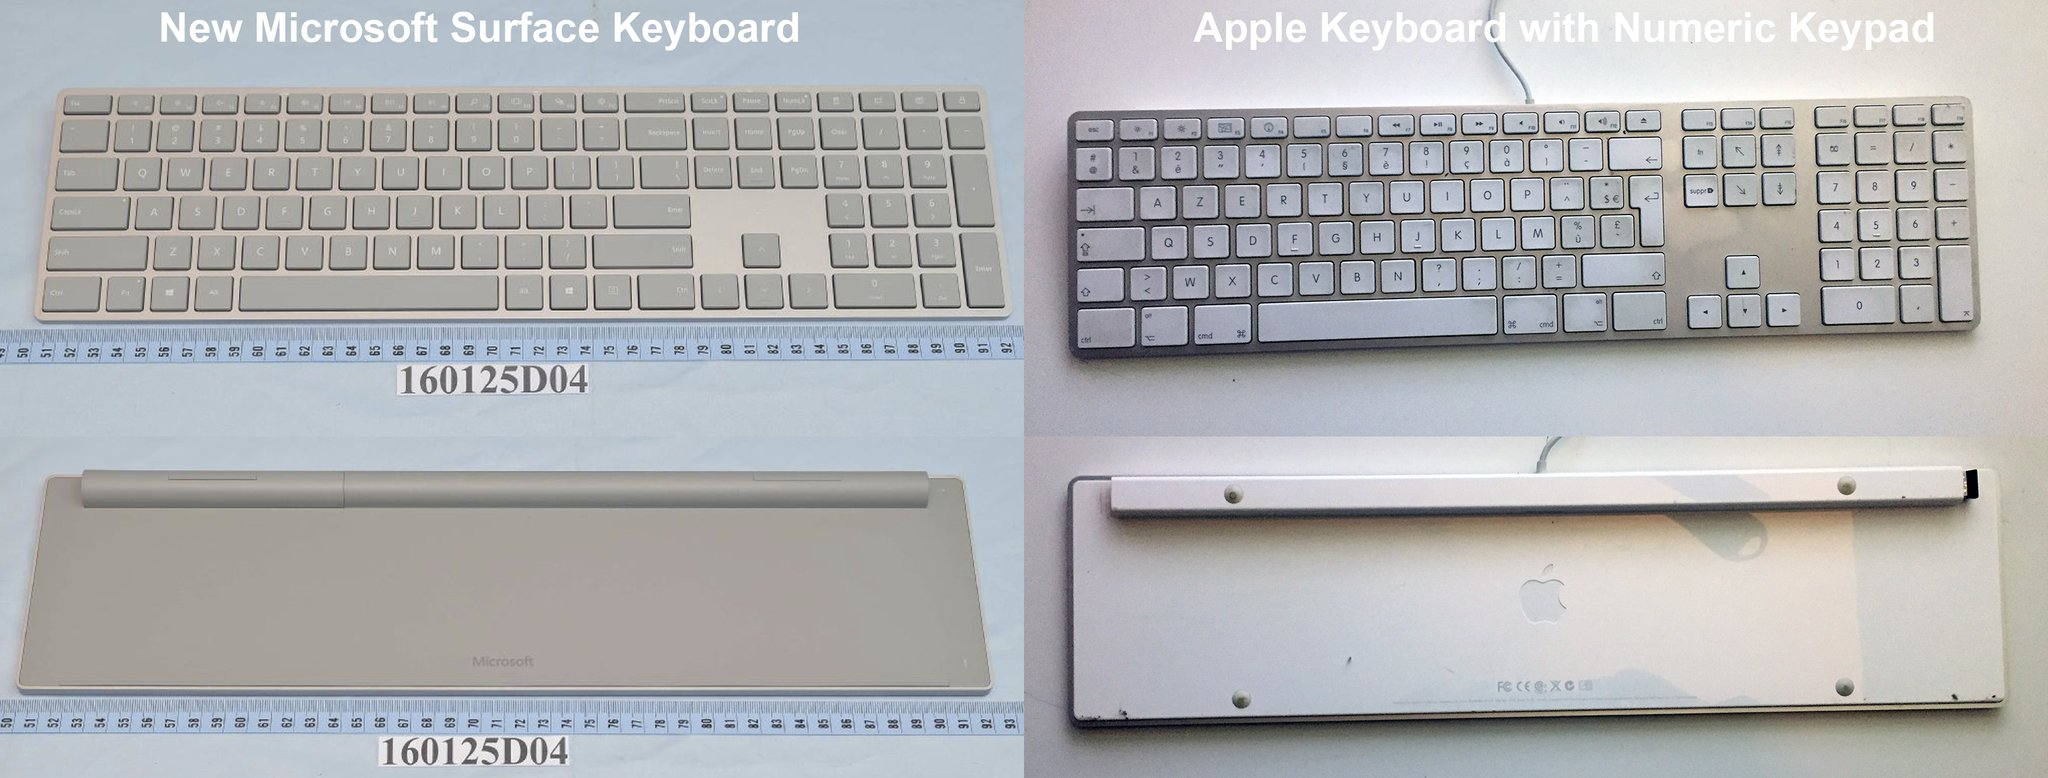 microsoft-copie-tastatura-apple